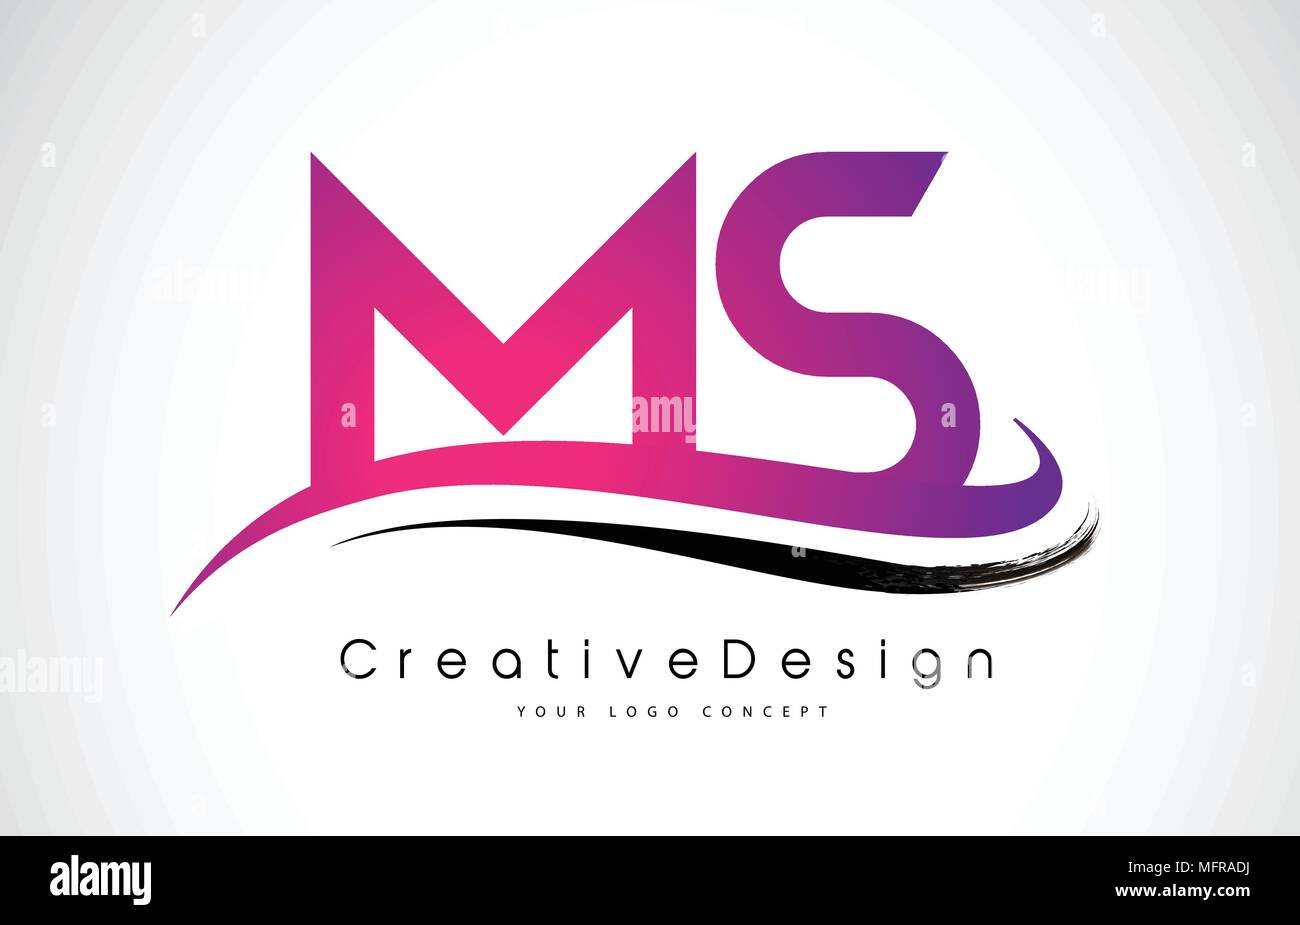 MS M S Letter Logo Design in Black Colors. Creative Modern Letters ...